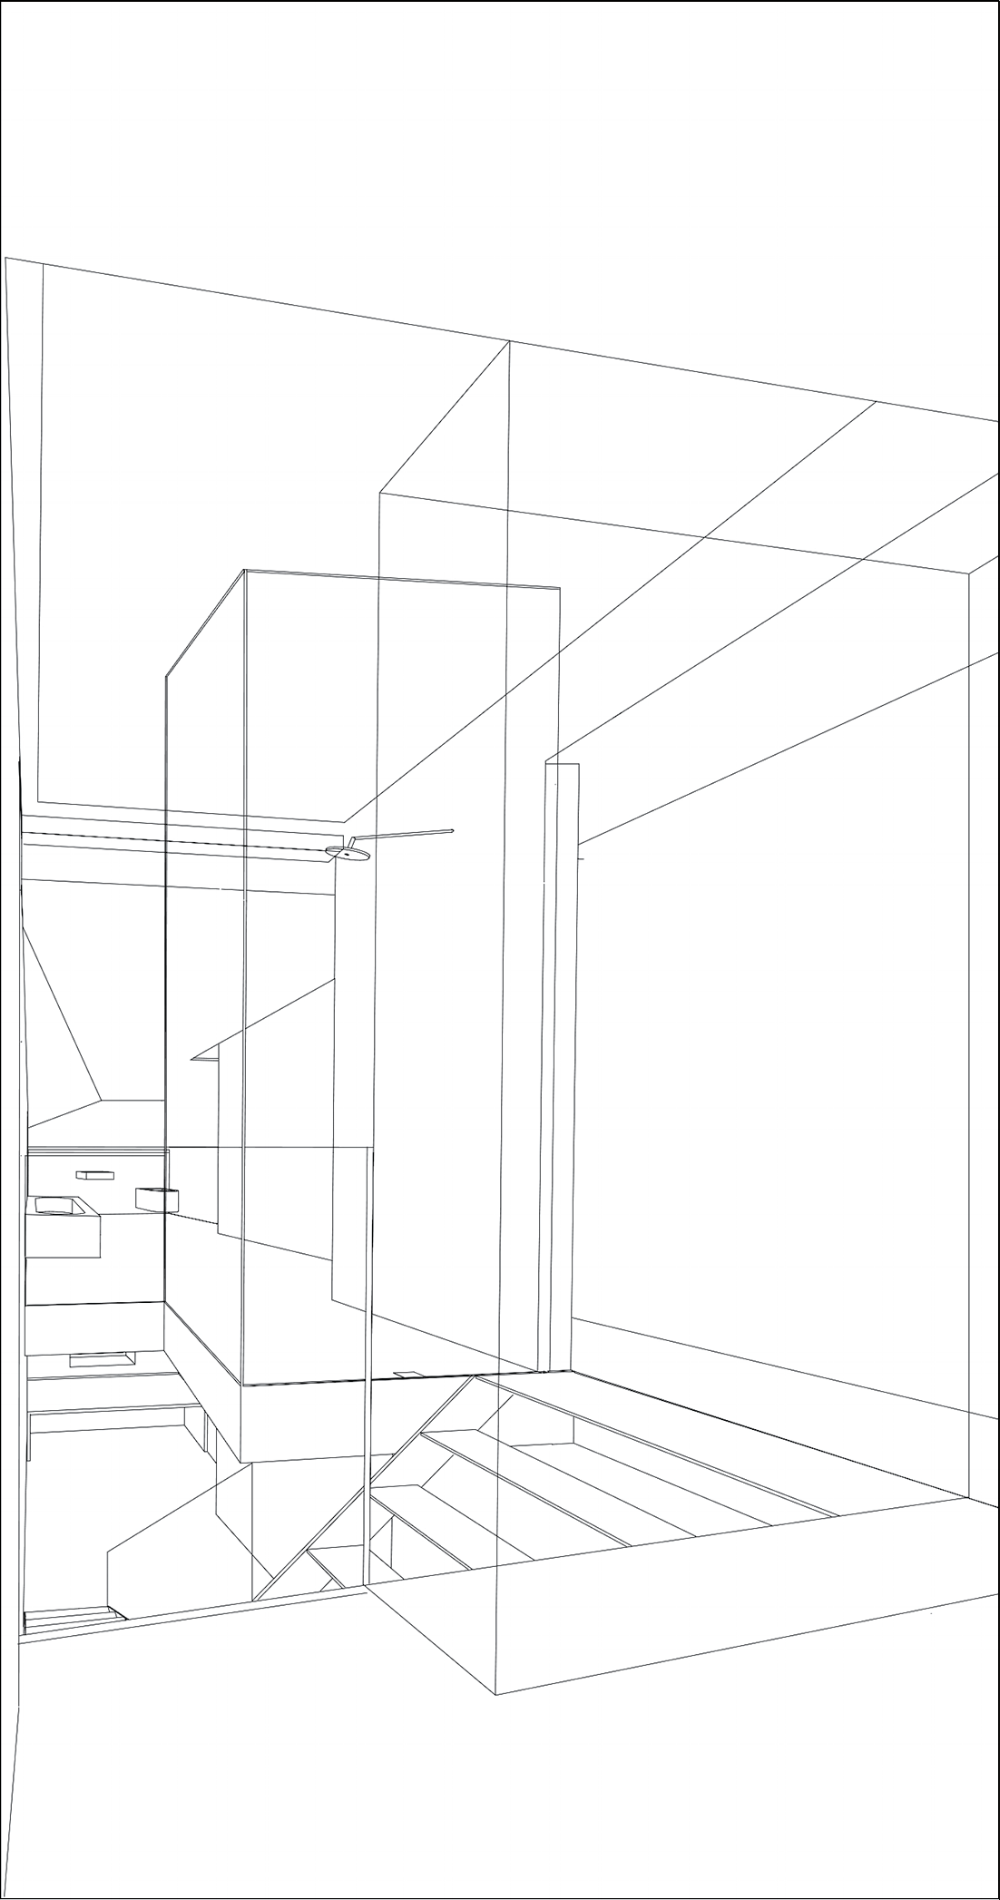 321 - Interiorview_3.png